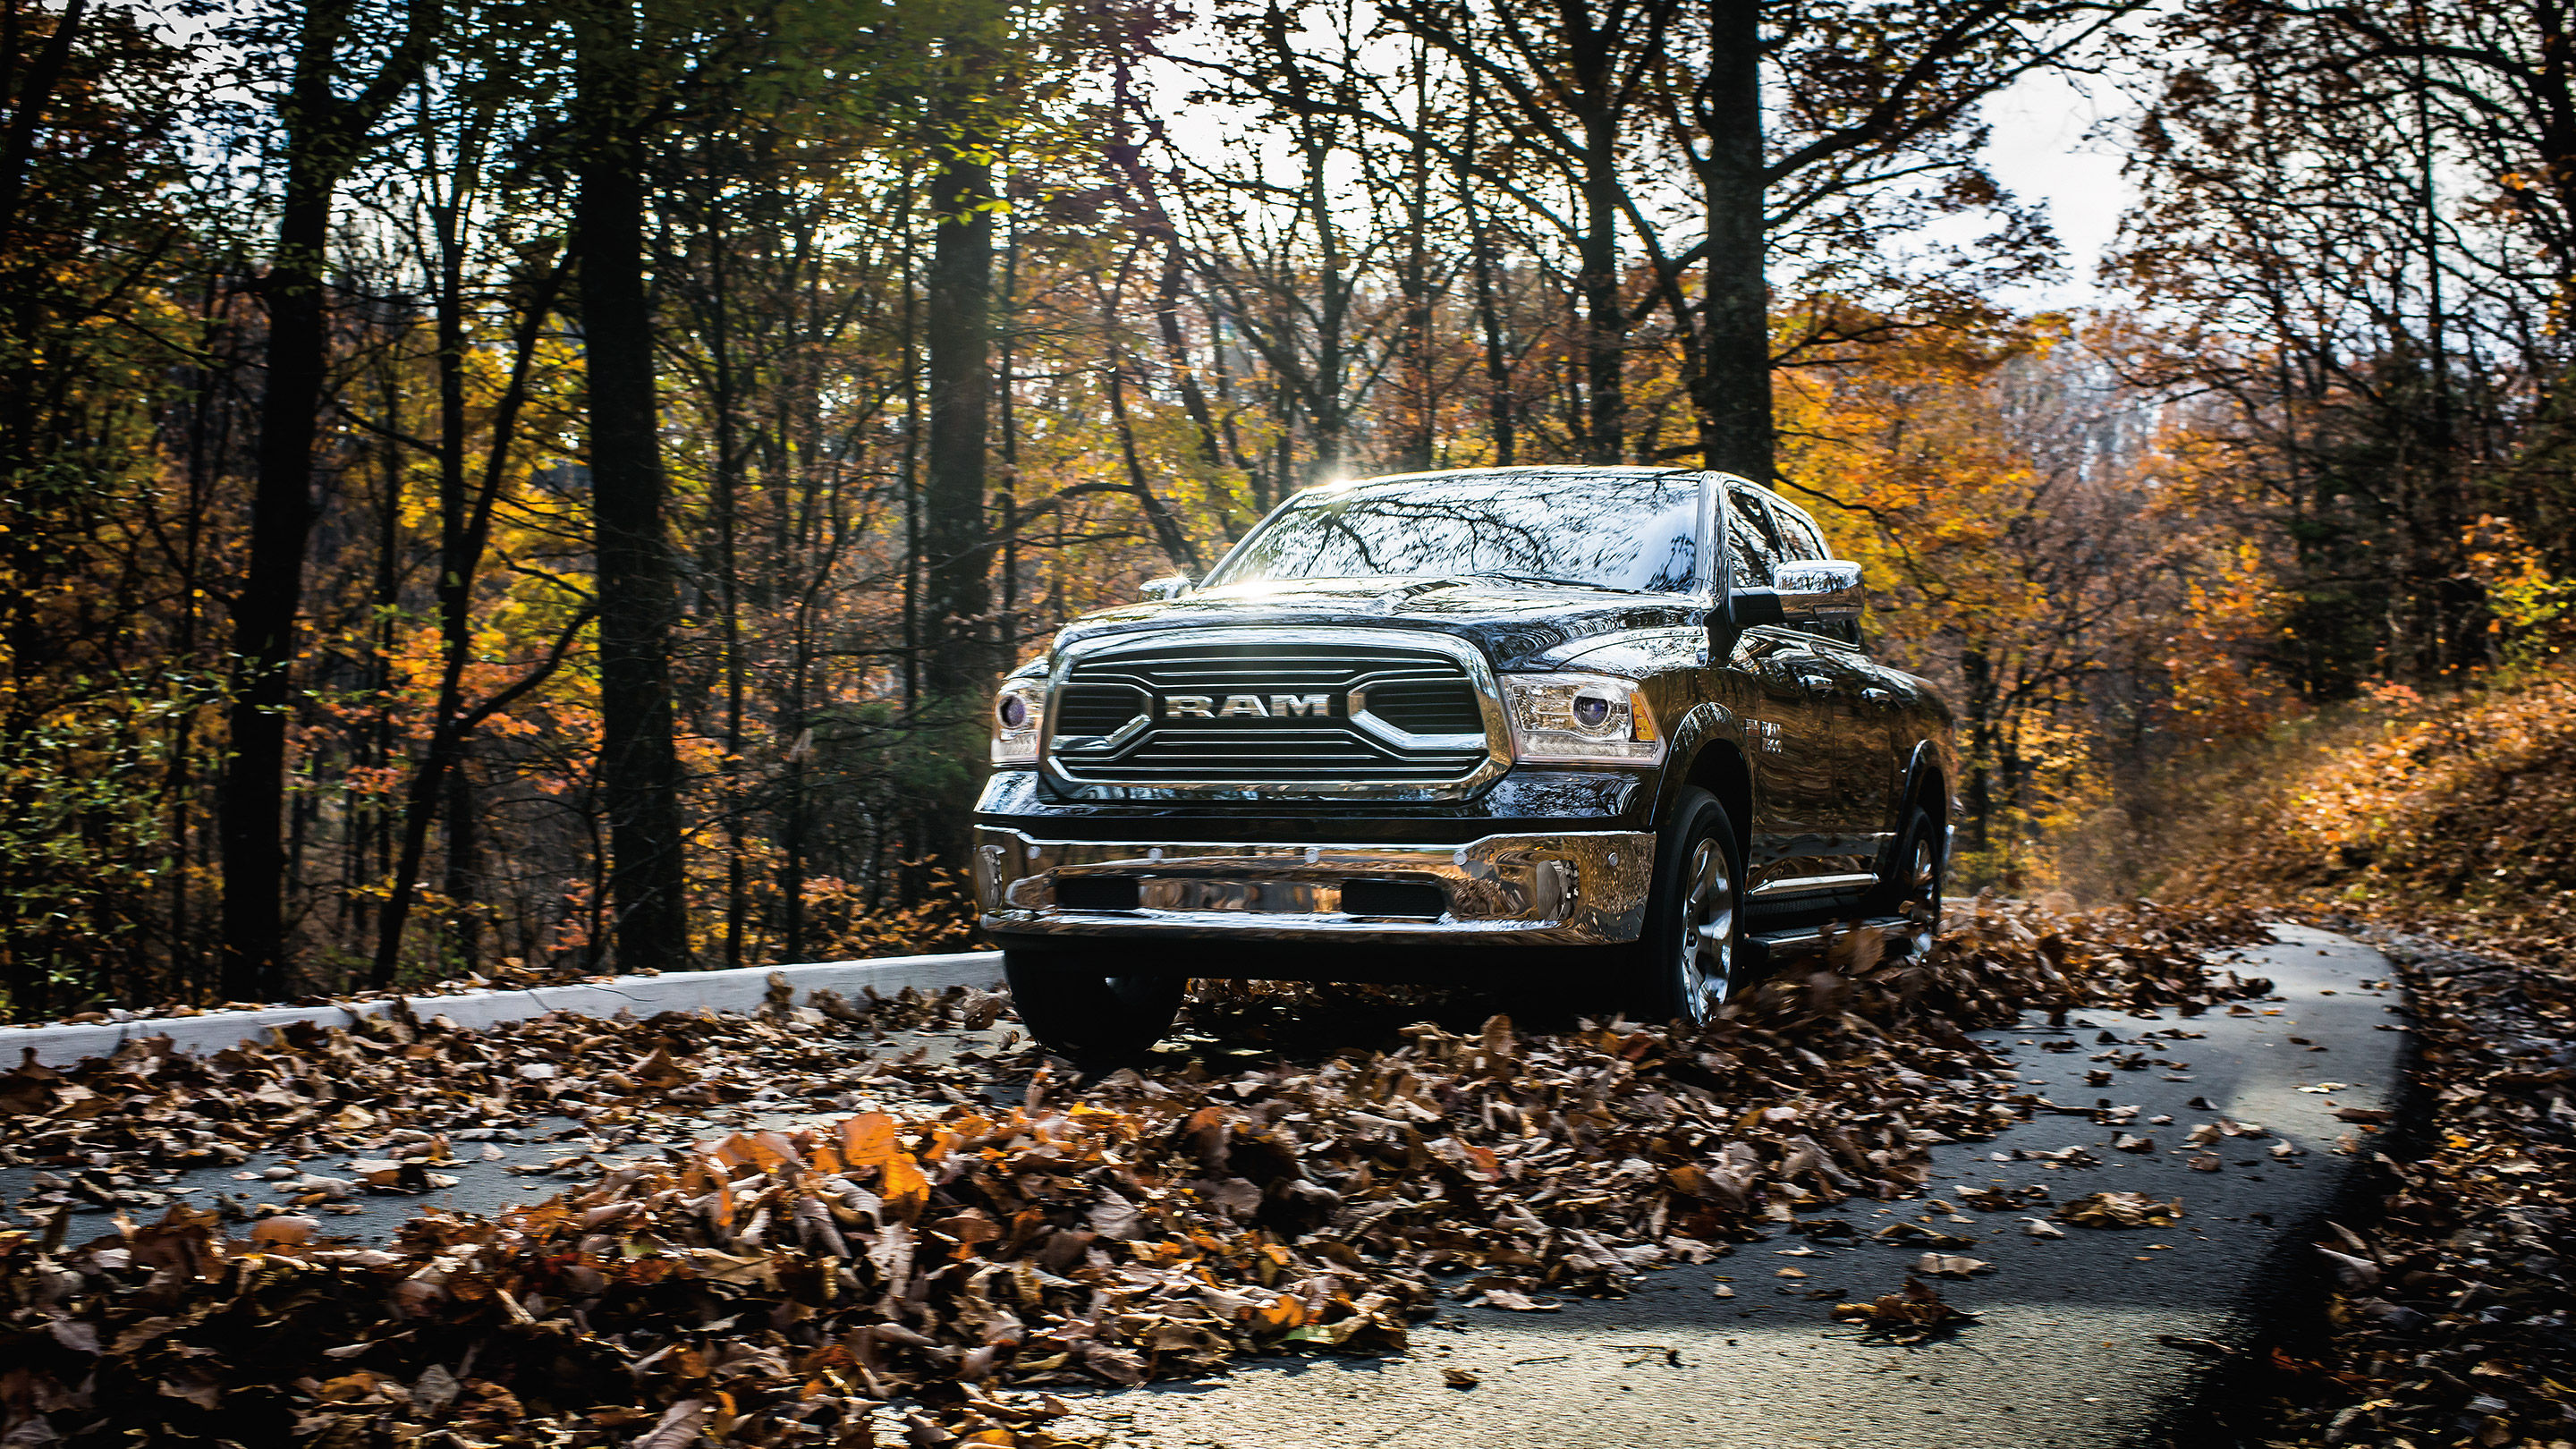 Now Is An Excellent Time To Check That New Ram Truck Youu0027ve Been Dreaming  Of Off Your Wish List When You Visit ...